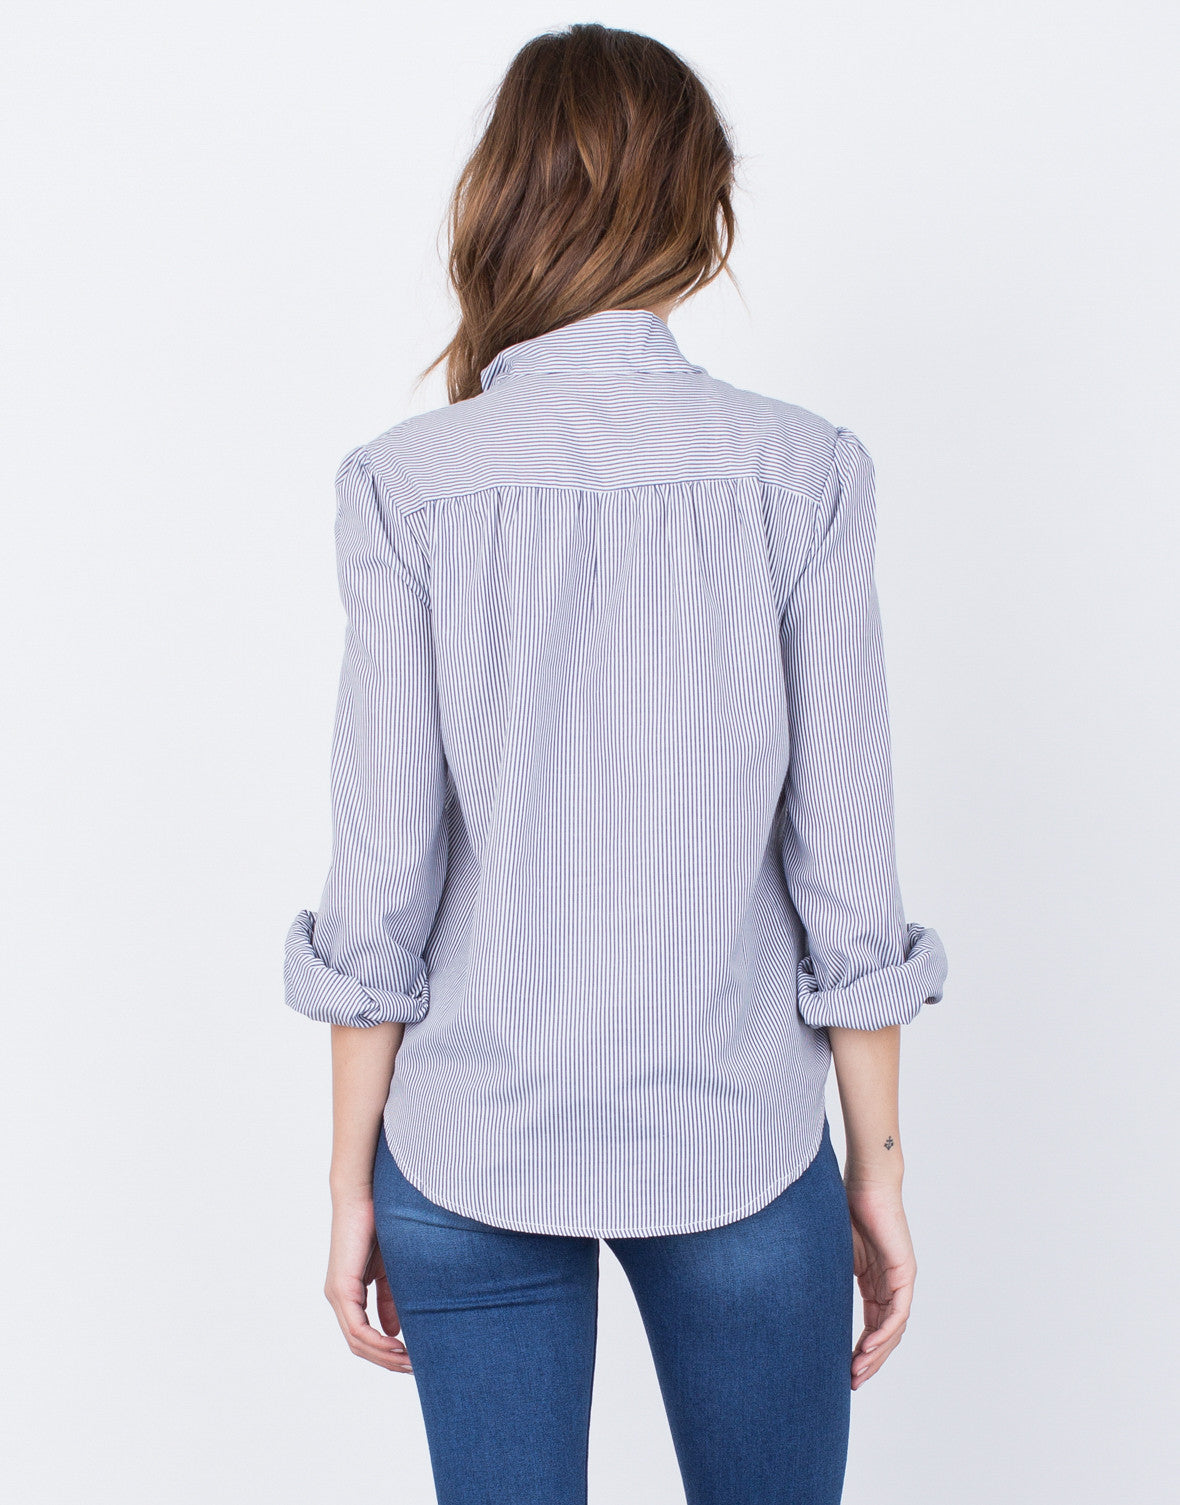 Back View of Tie Me Around Blouse